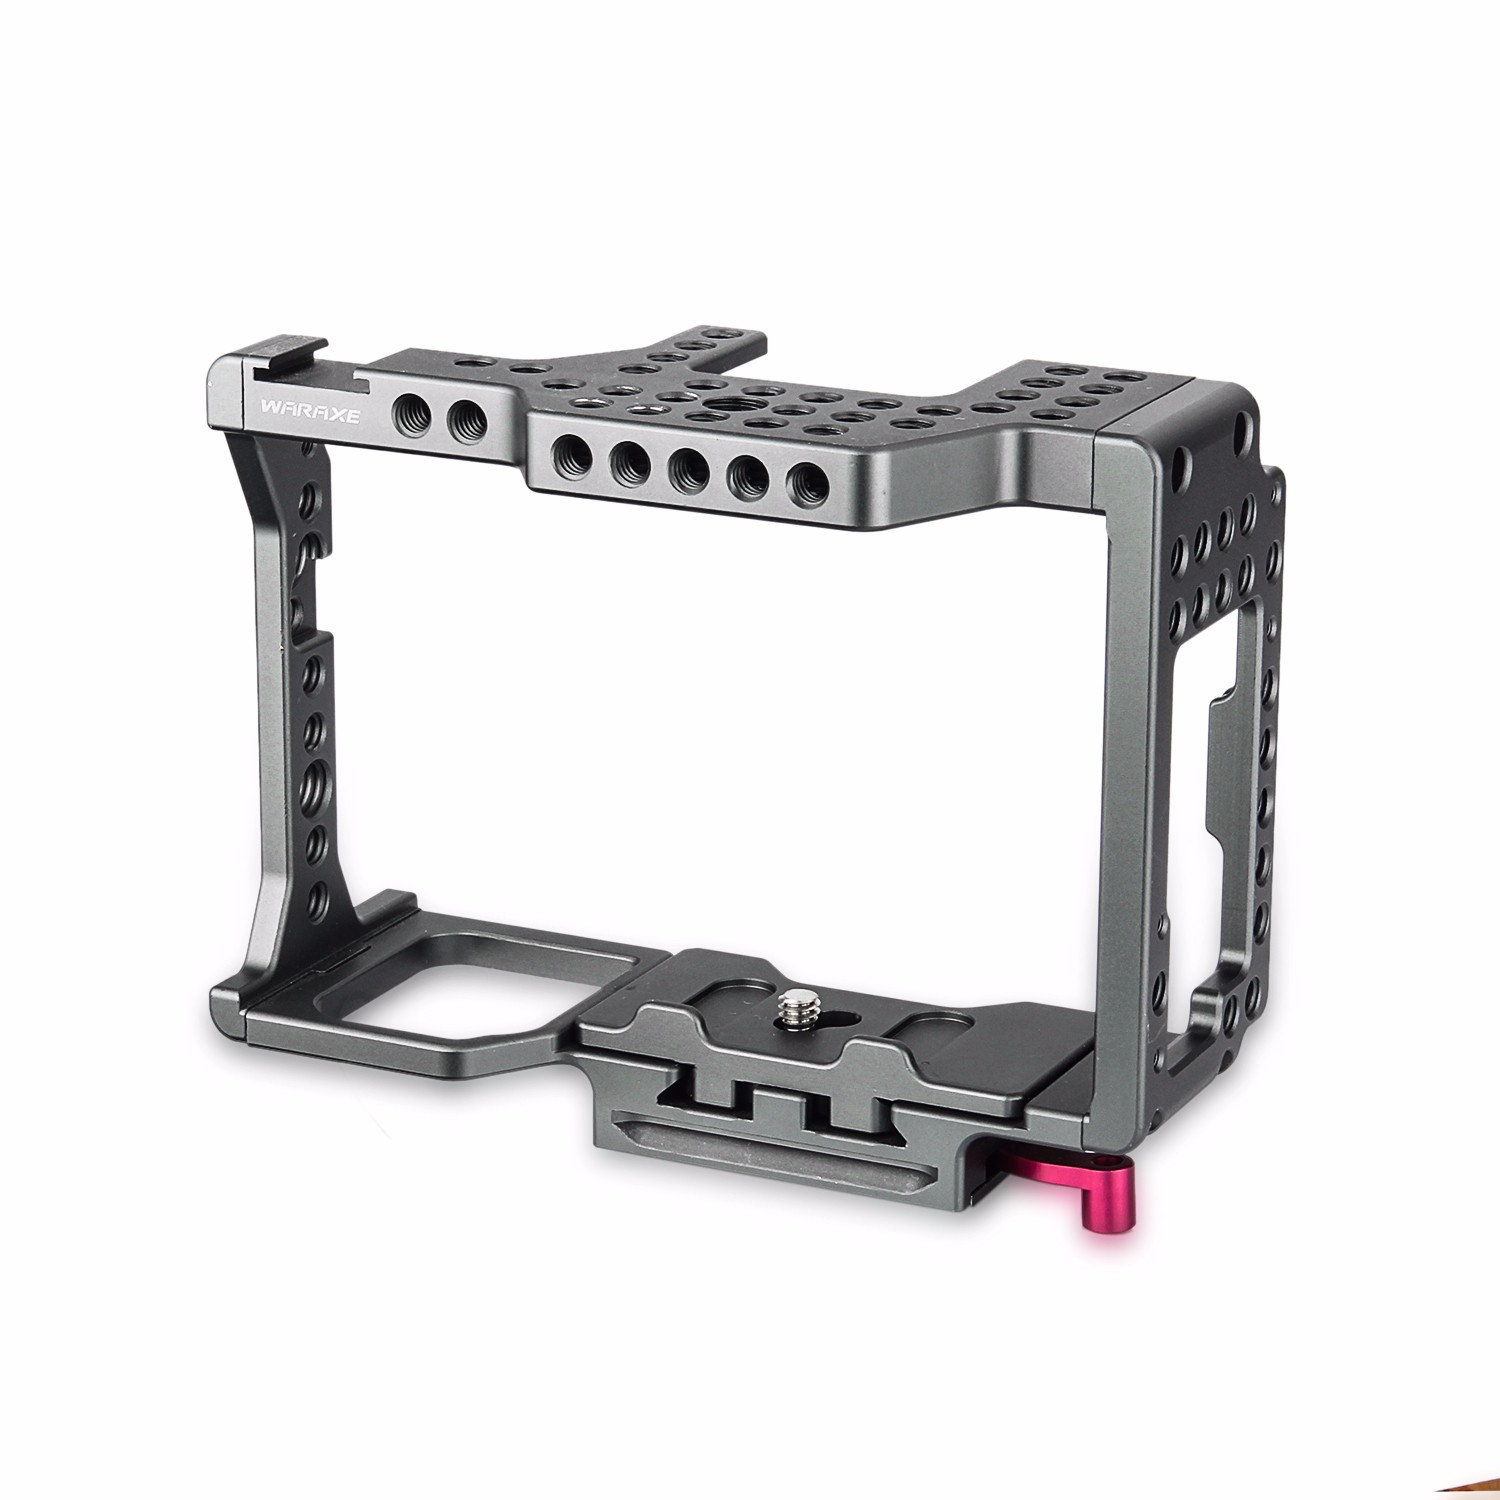 WARAXE Camera Cage Built-in Quick Release Fits Arca Swiss for R S II R II S II Threaded Holes